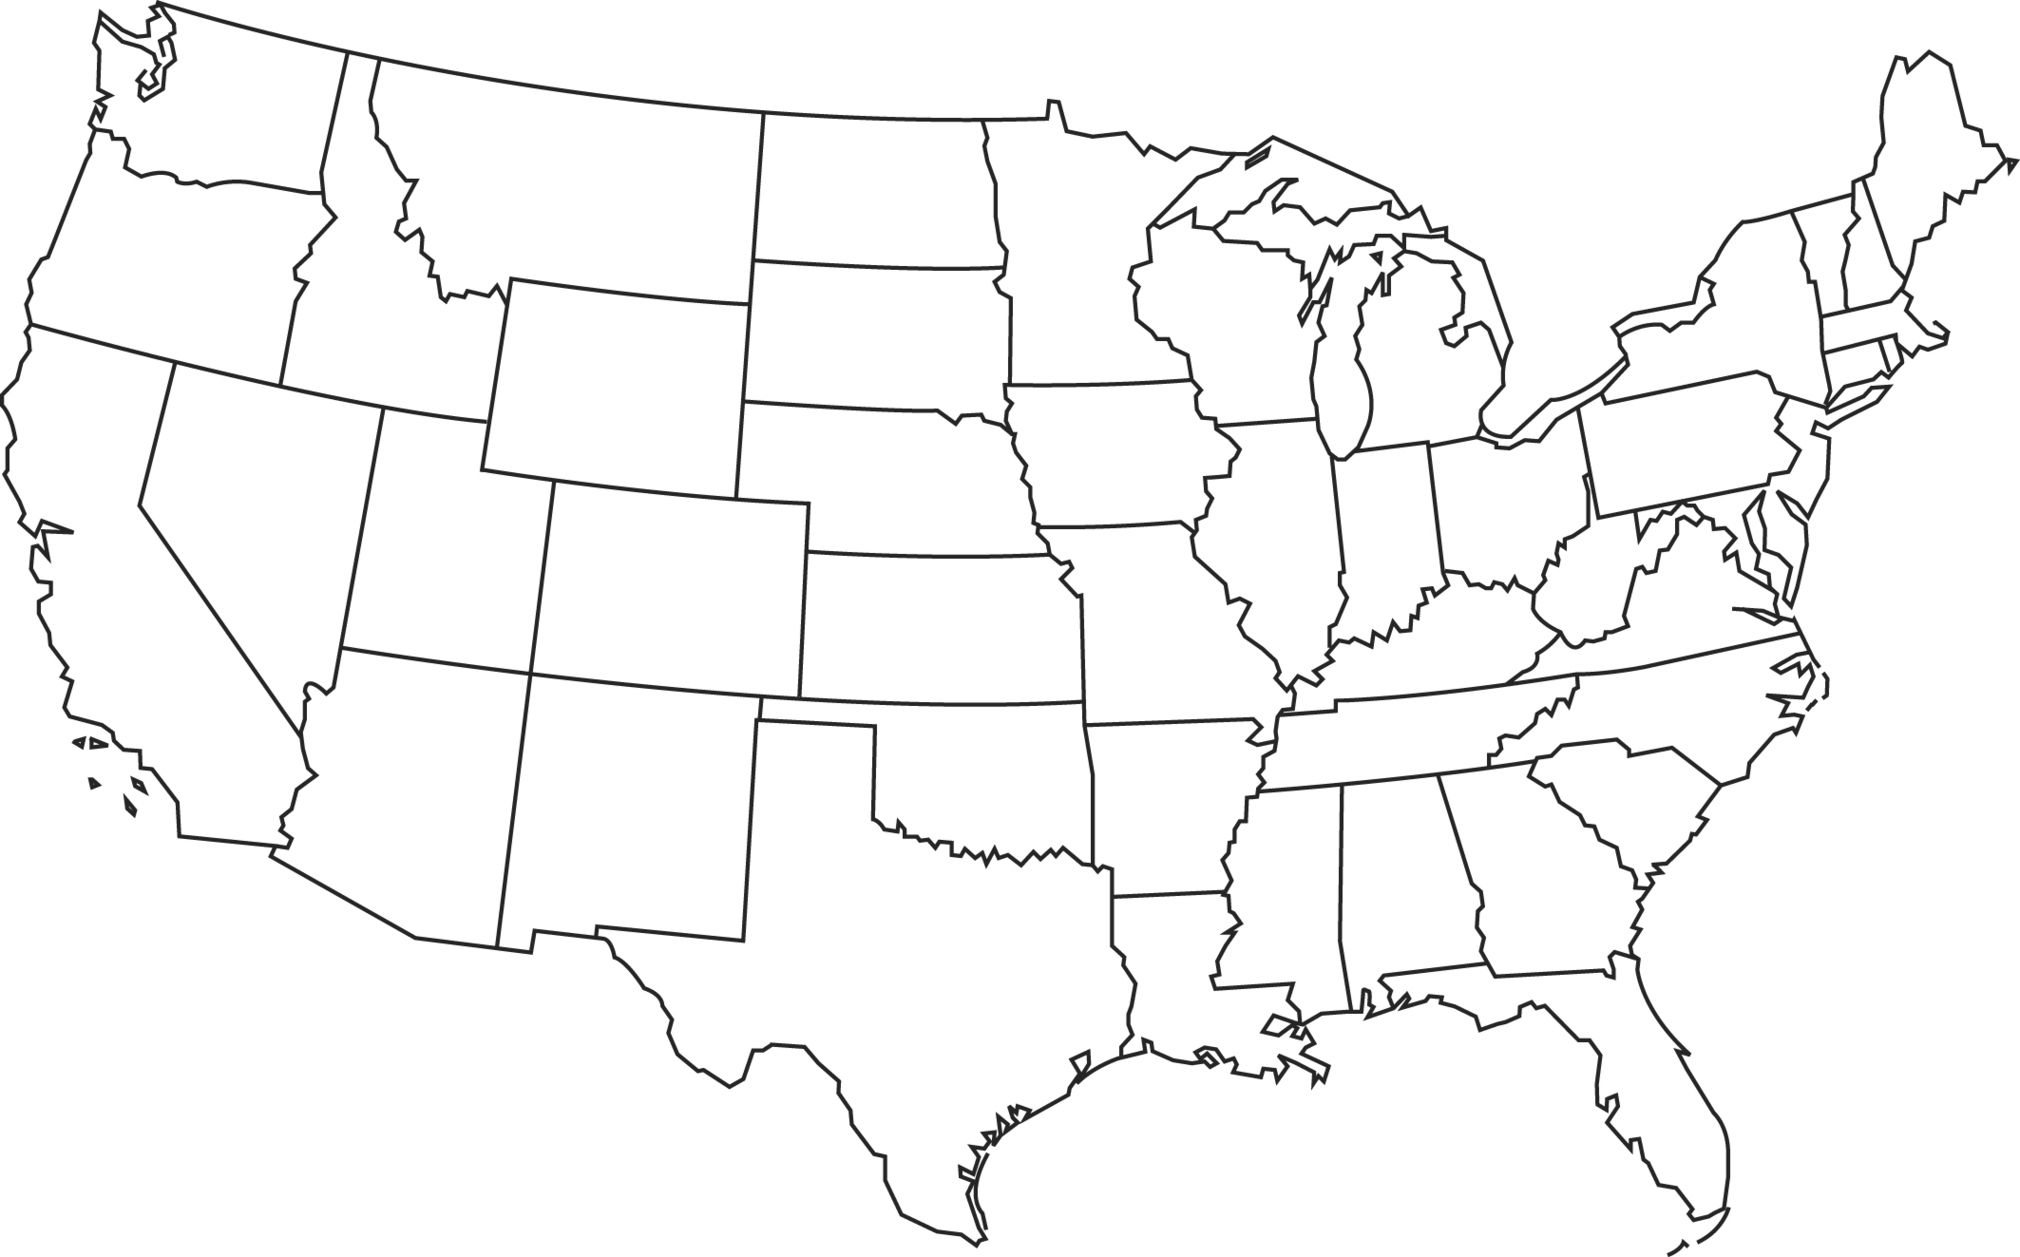 Blank Map Of The United States Of America America Map Black And White American Map Usa Outline Map Of The